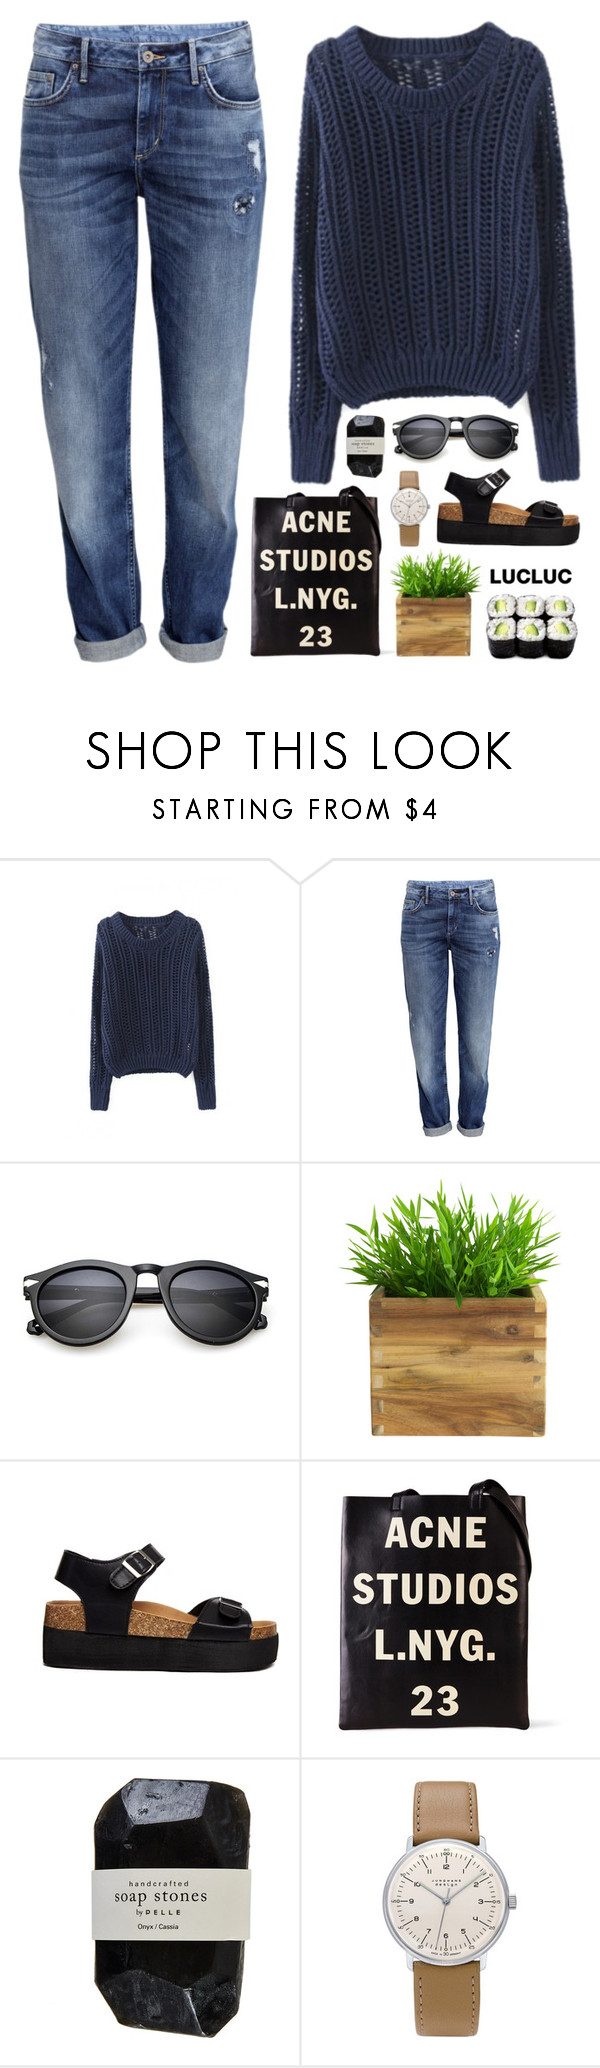 """""""what we want"""" by martosaur ❤ liked on Polyvore featuring H&M, Truffle, Acne Studios, Cassia and Junghans"""